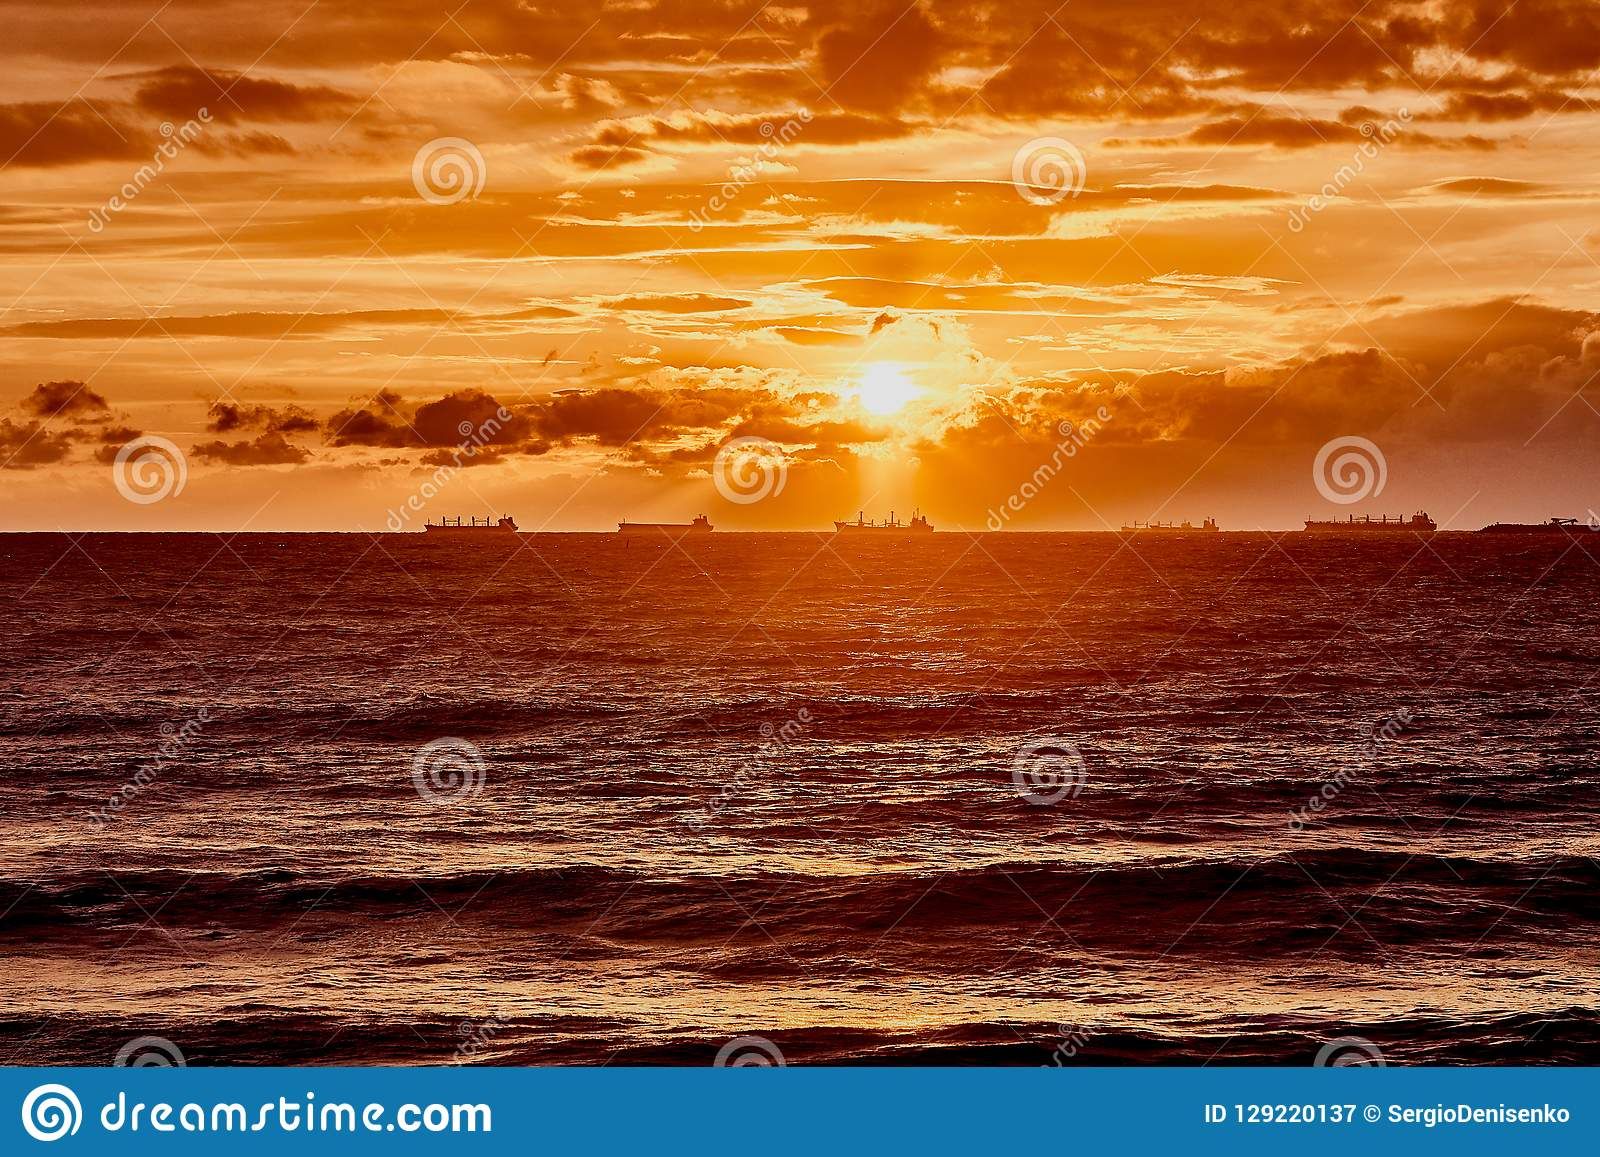 Orange sun with clouds over the gray sea with waves. The magical sunset on the Black Sea in Gelendzhik. Amazing natural background